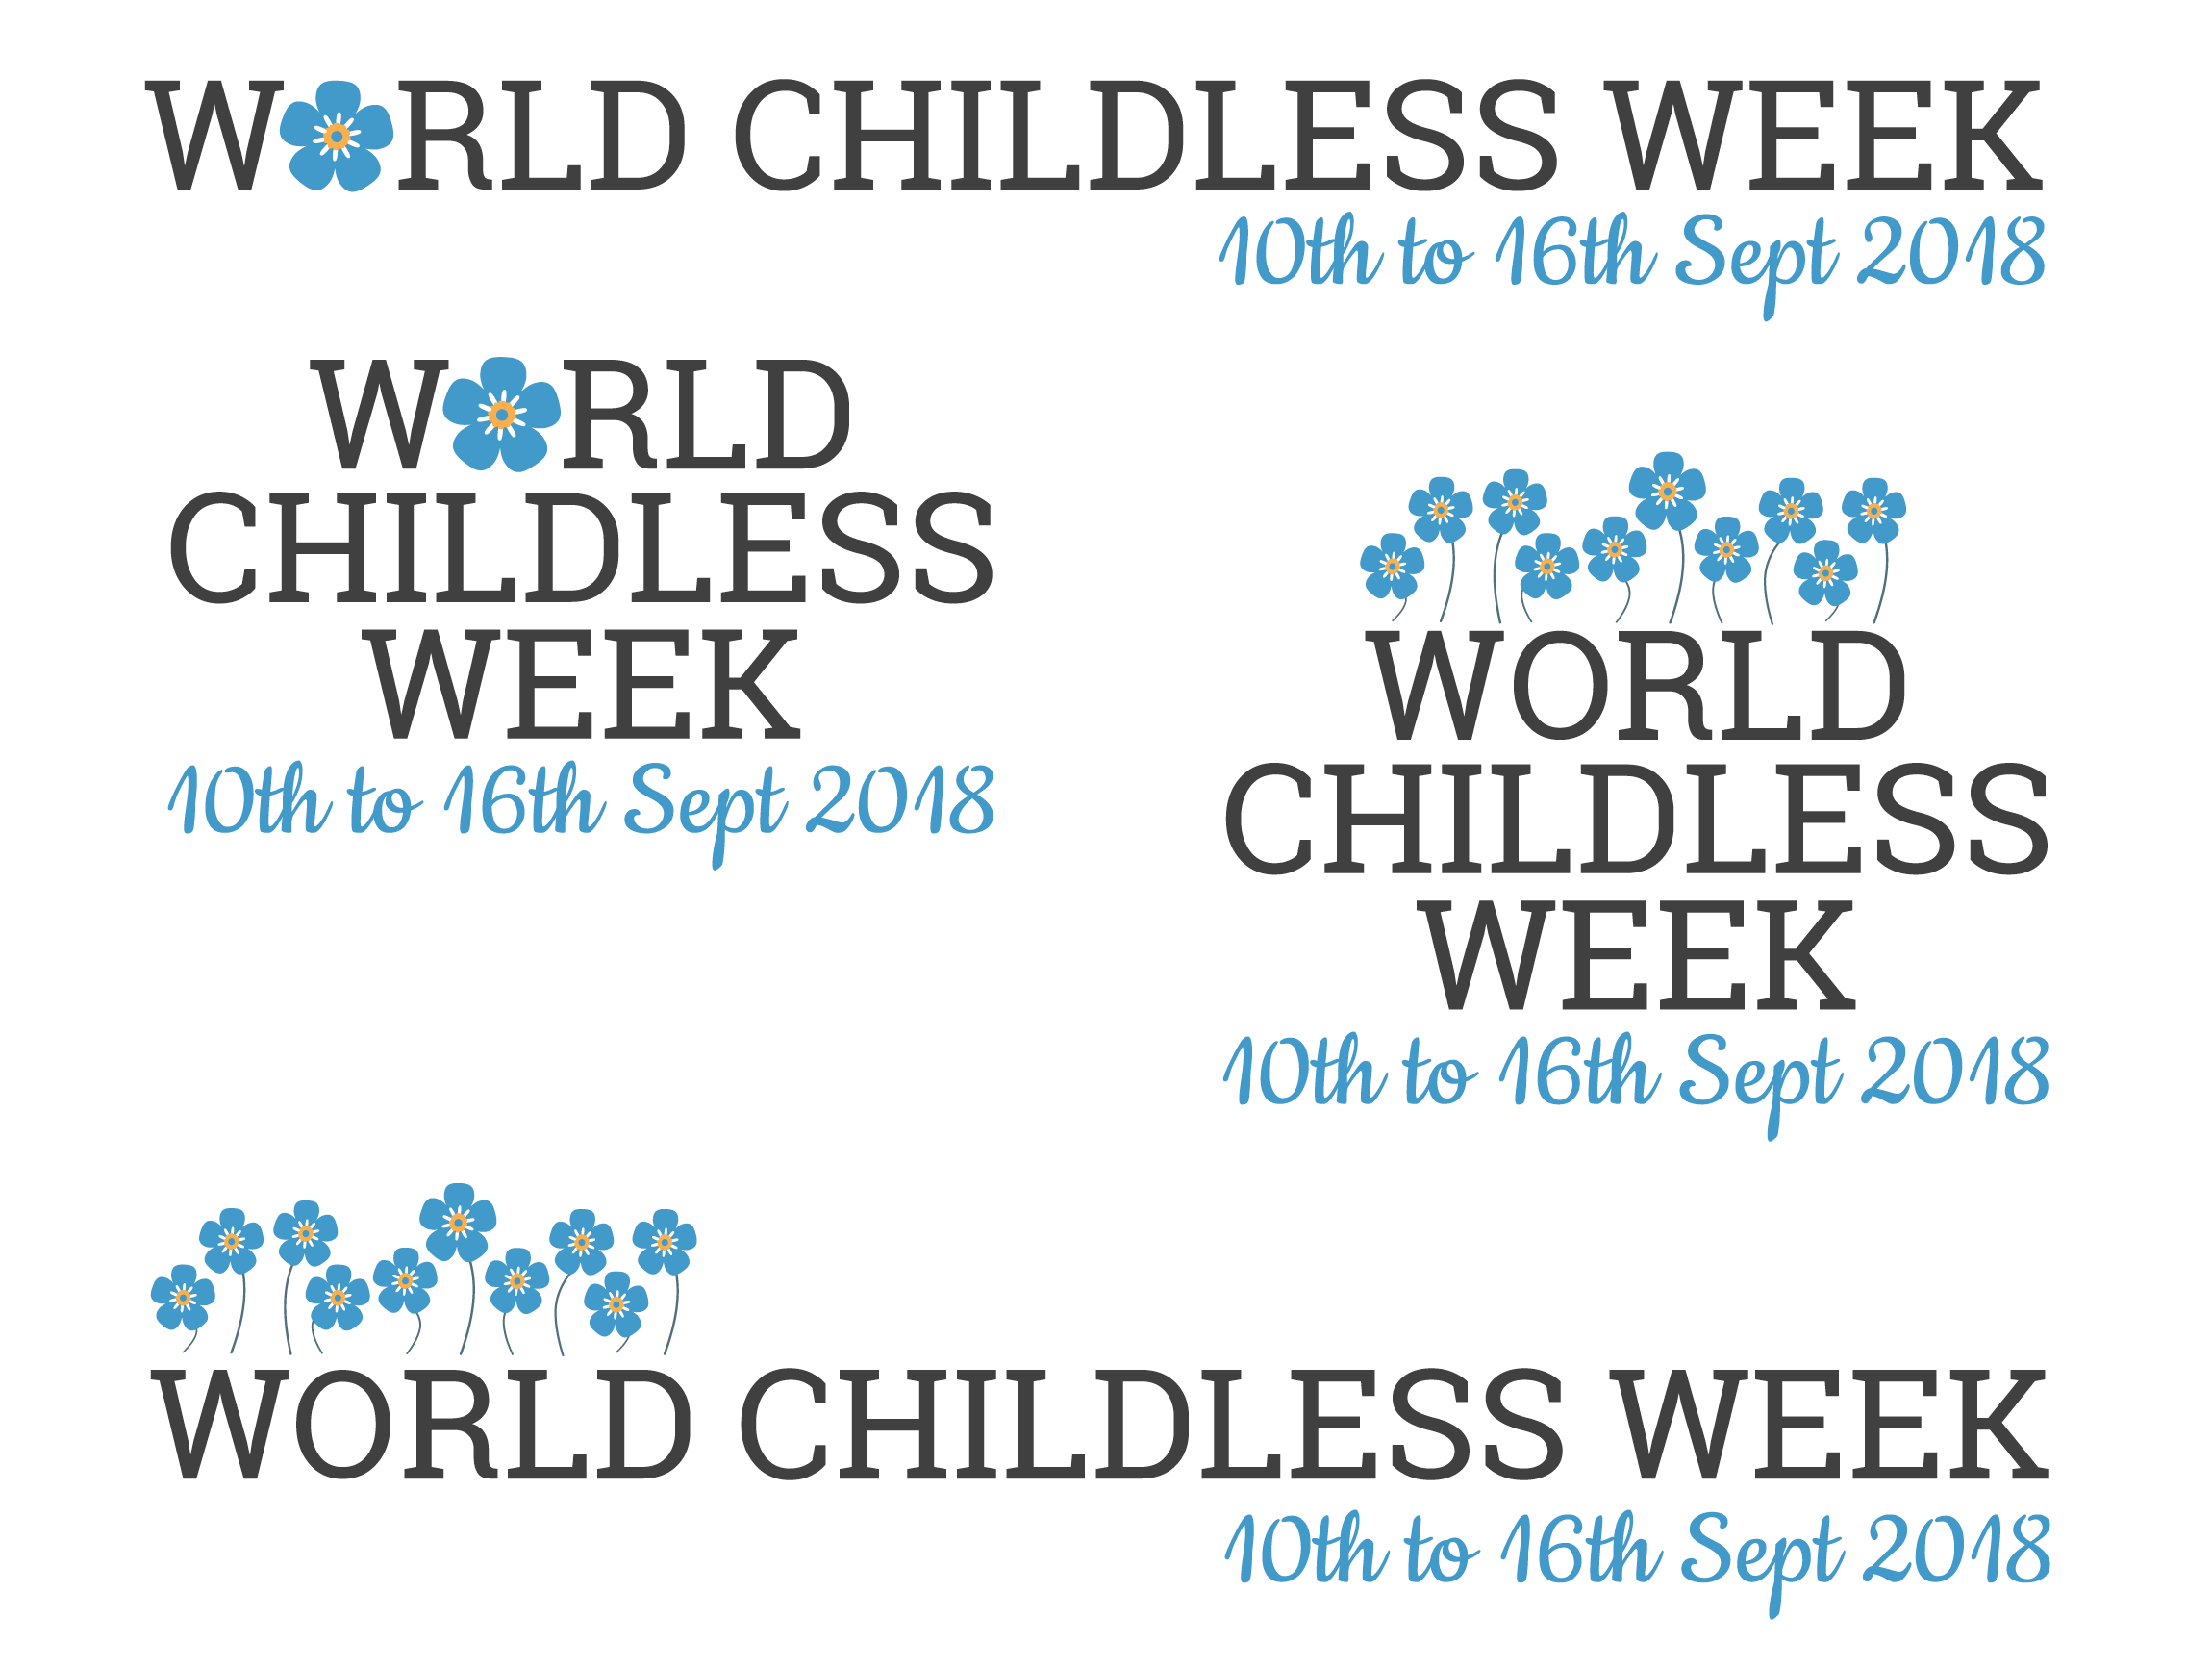 The full set of logos with mono text, developed by Hello Lovely for Stephanie Phillips, World Childless Week, December 2018